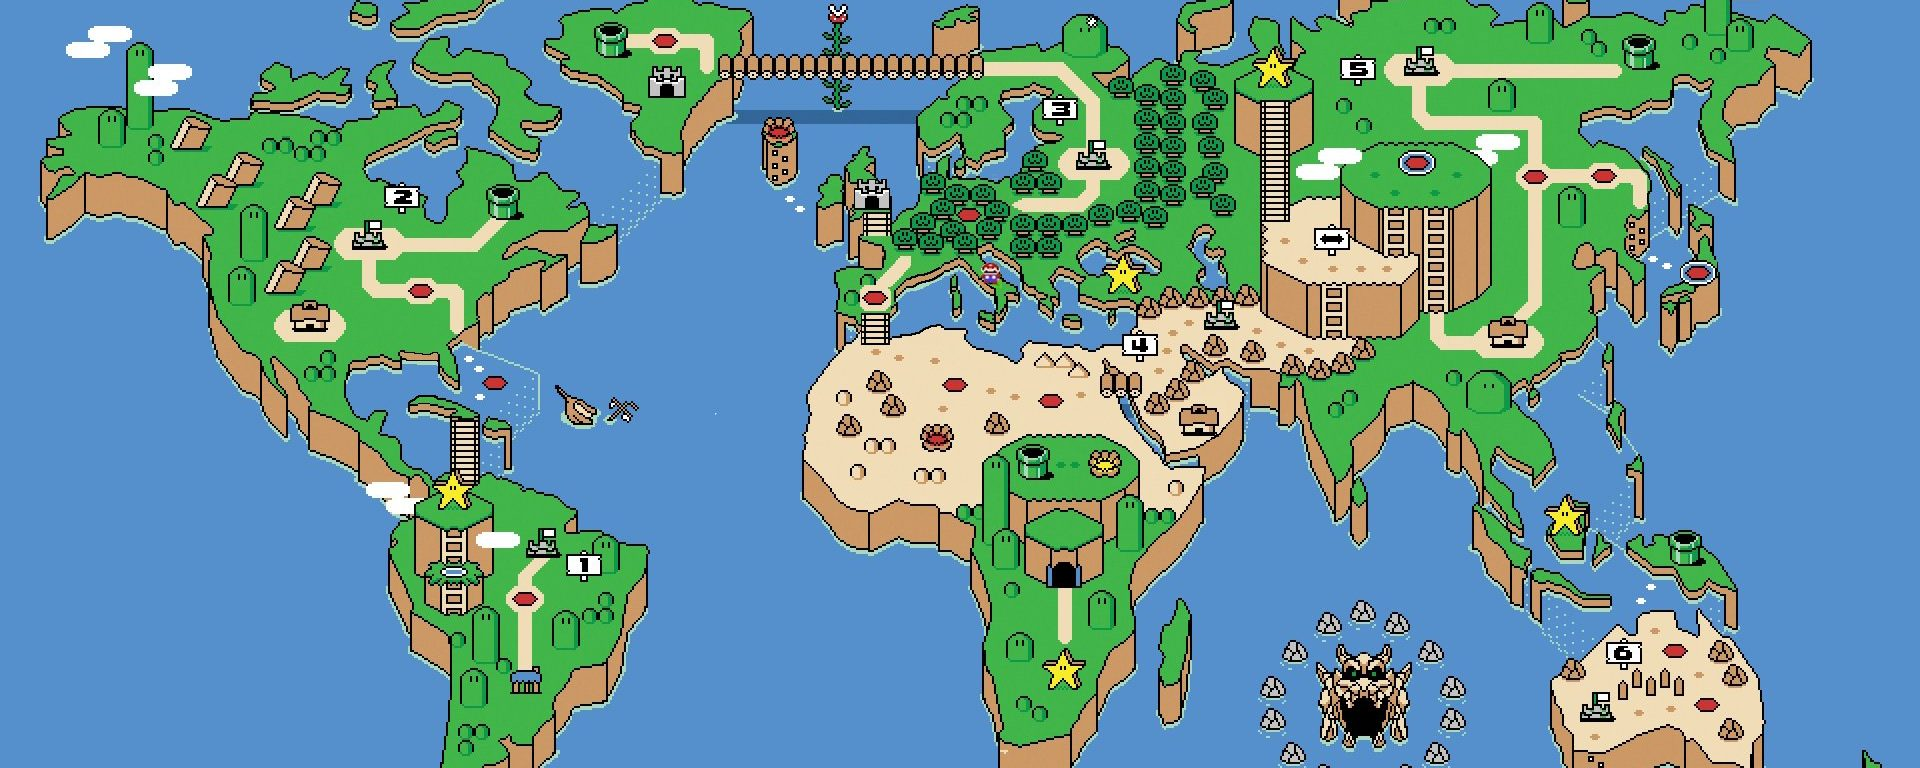 Super-Mario-World-Map-e1511966408370-1920x768.jpg